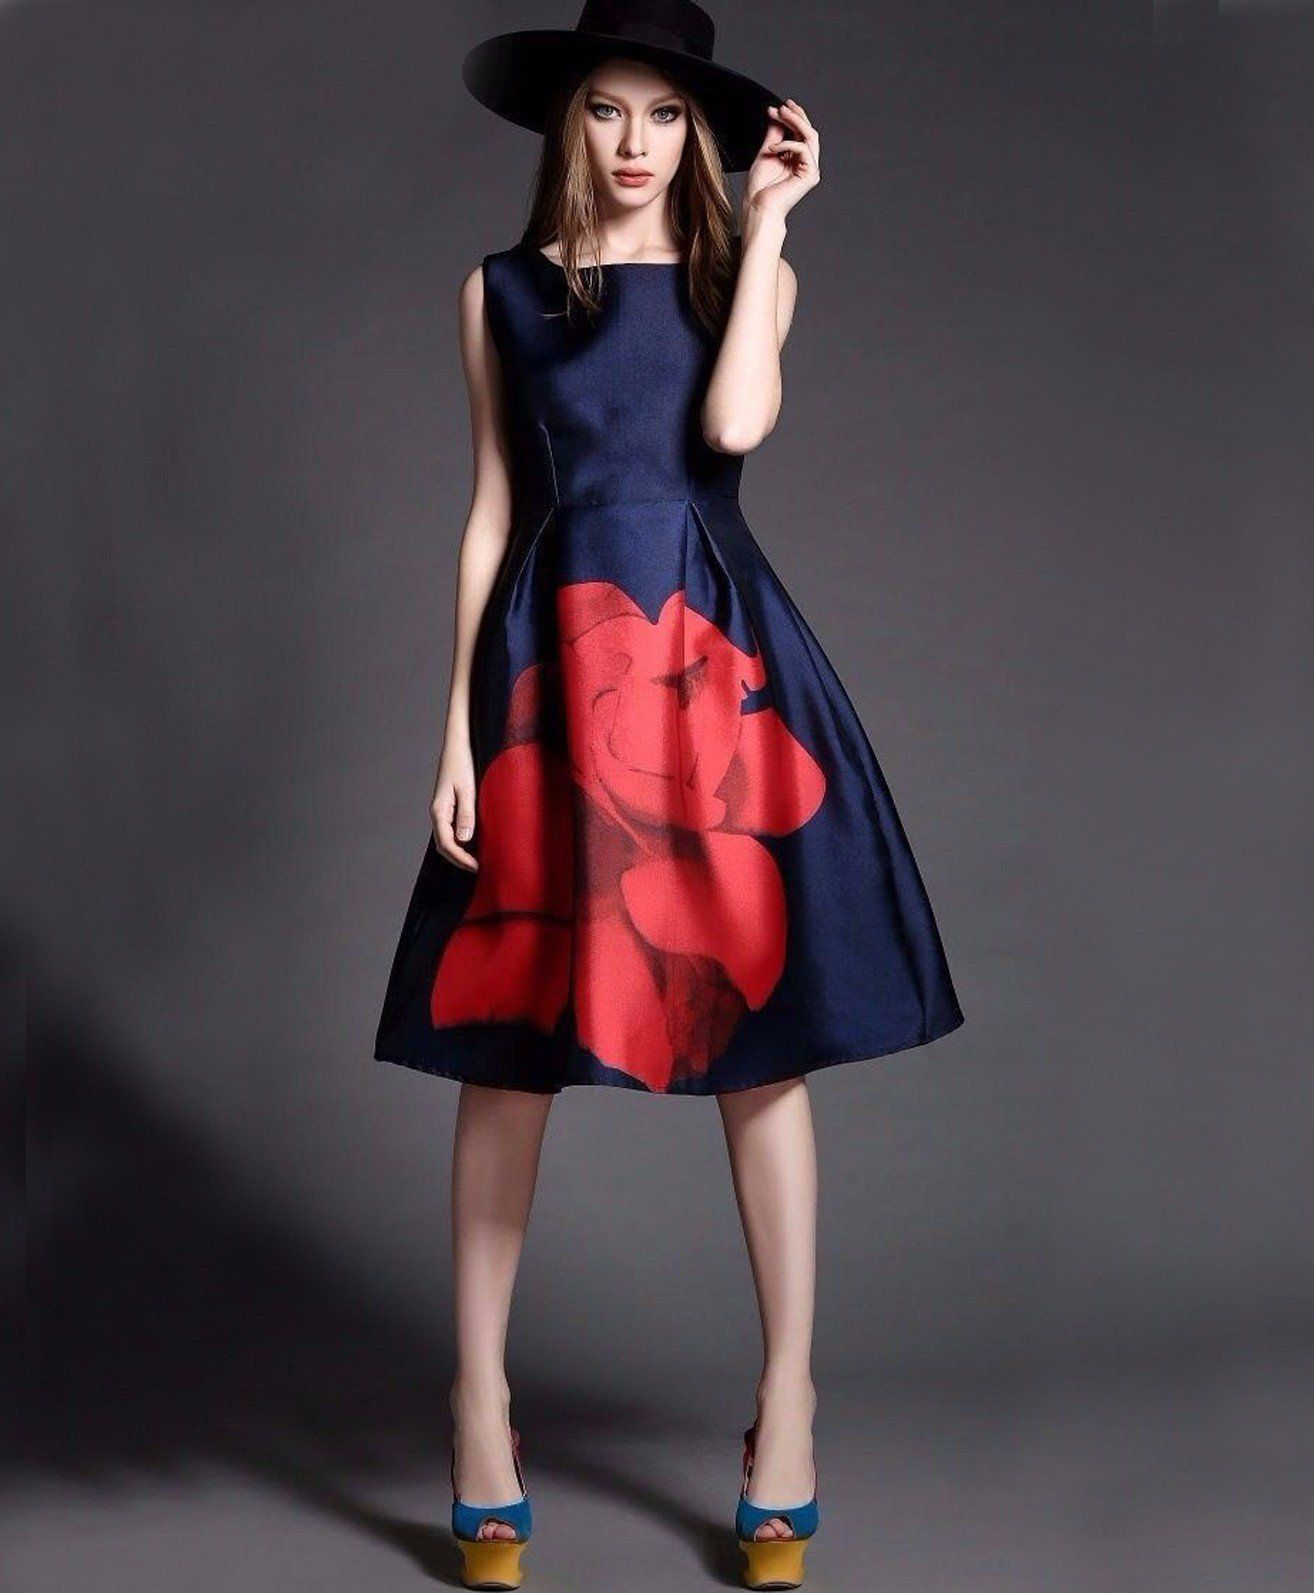 550052e1fd New Blue and Red Floral Print Frock Style Top. Find this Pin and more on One  Piece Dresses ...